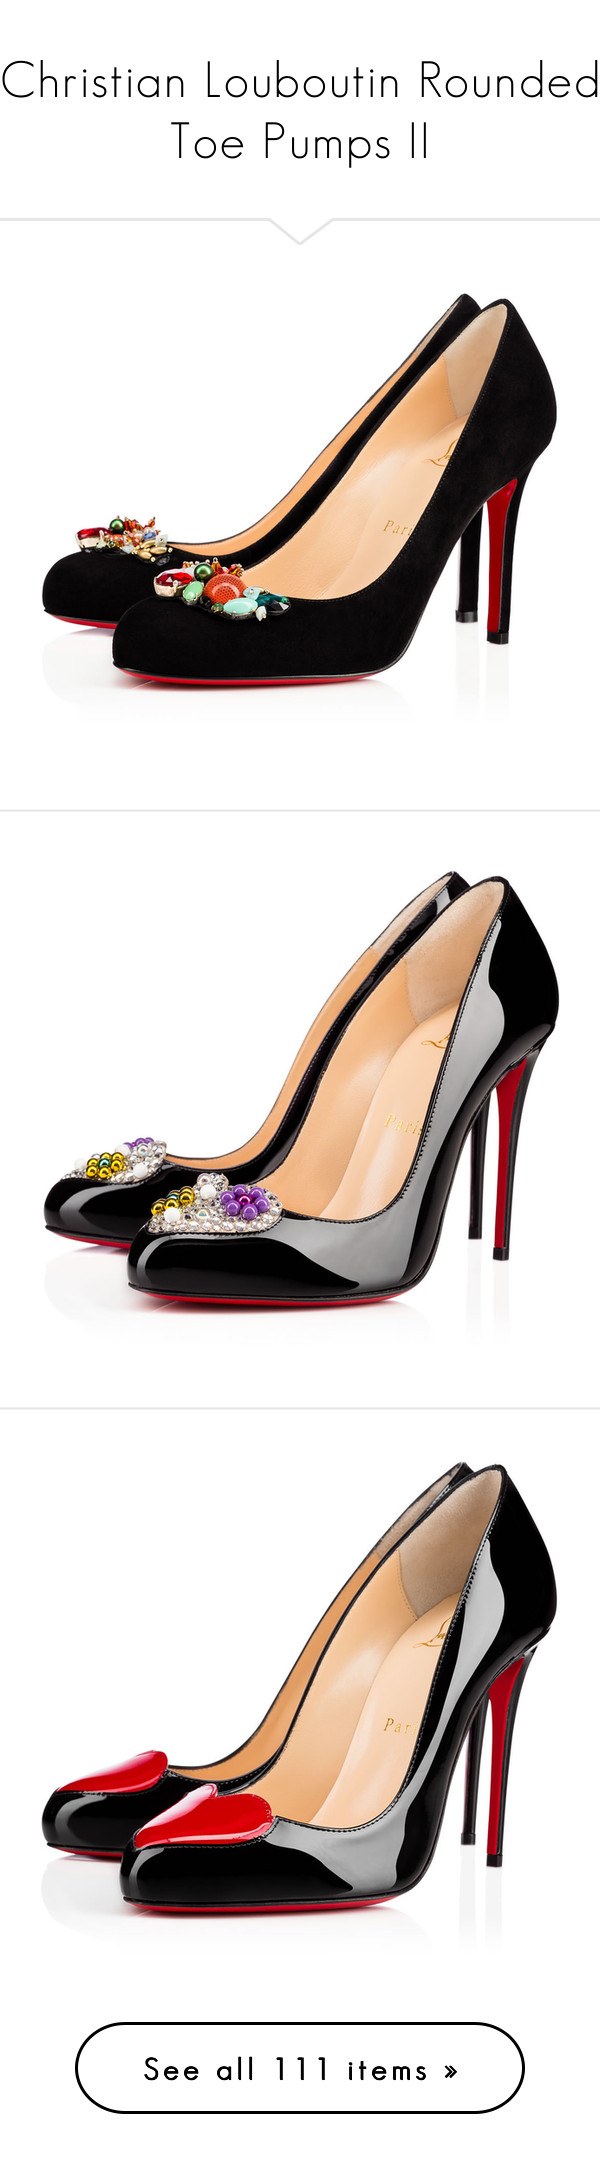 """Christian Louboutin Rounded Toe Pumps II"" by sakuragirl ❤ liked on Polyvore featuring shoes, multi colored shoes, multicolor shoes, multi color shoes, colorful shoes, black shoes, christian louboutin, louboutin, pumps and heels"